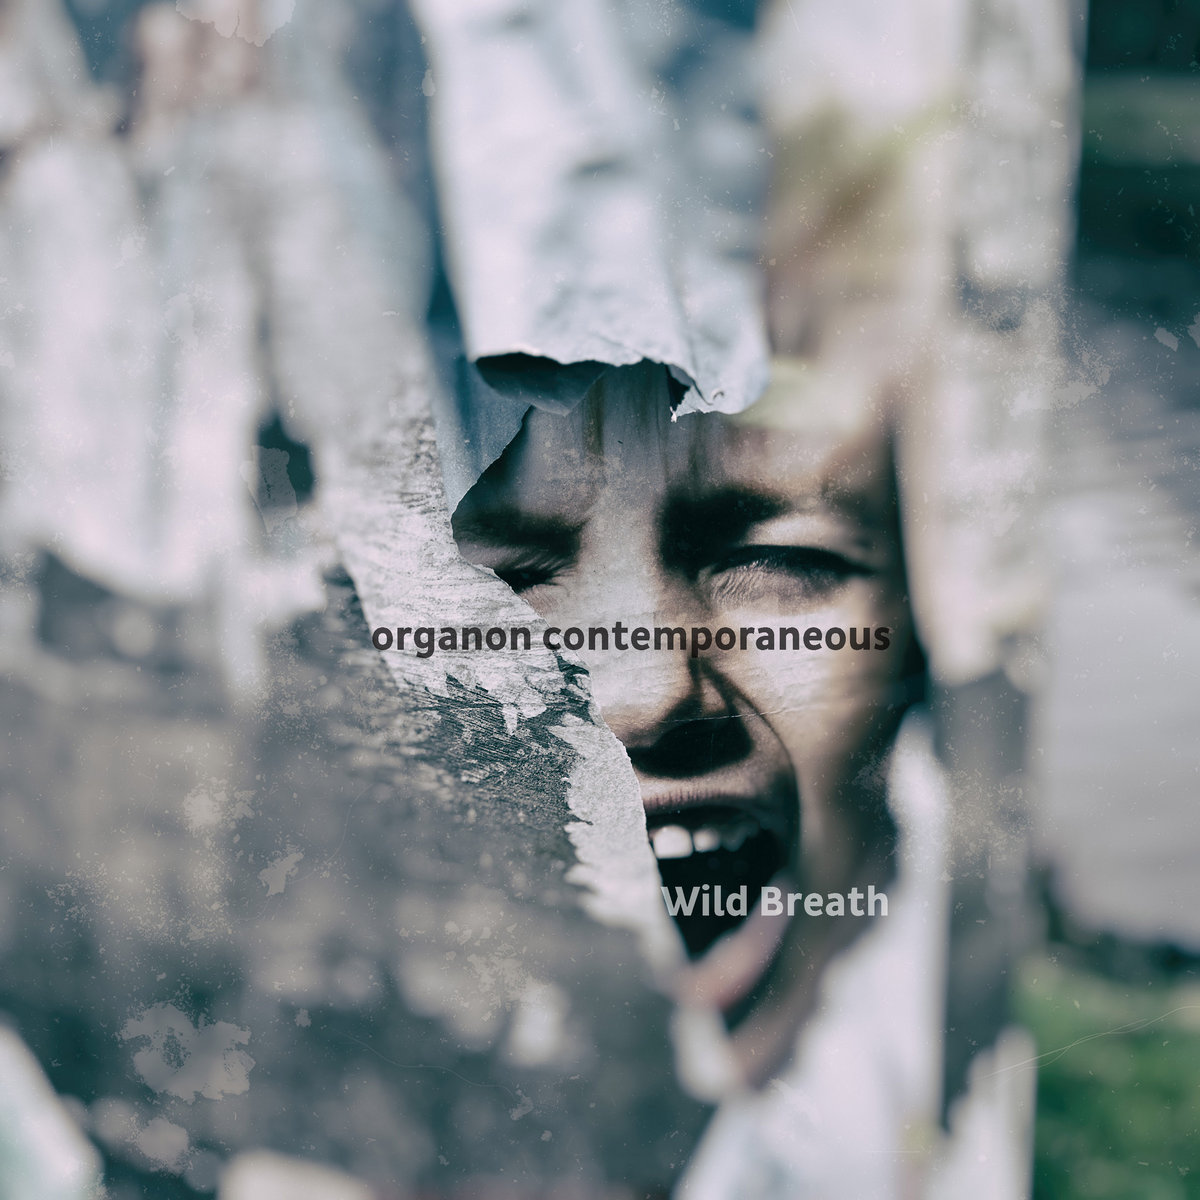 organon contemporaneous – Wild Breath